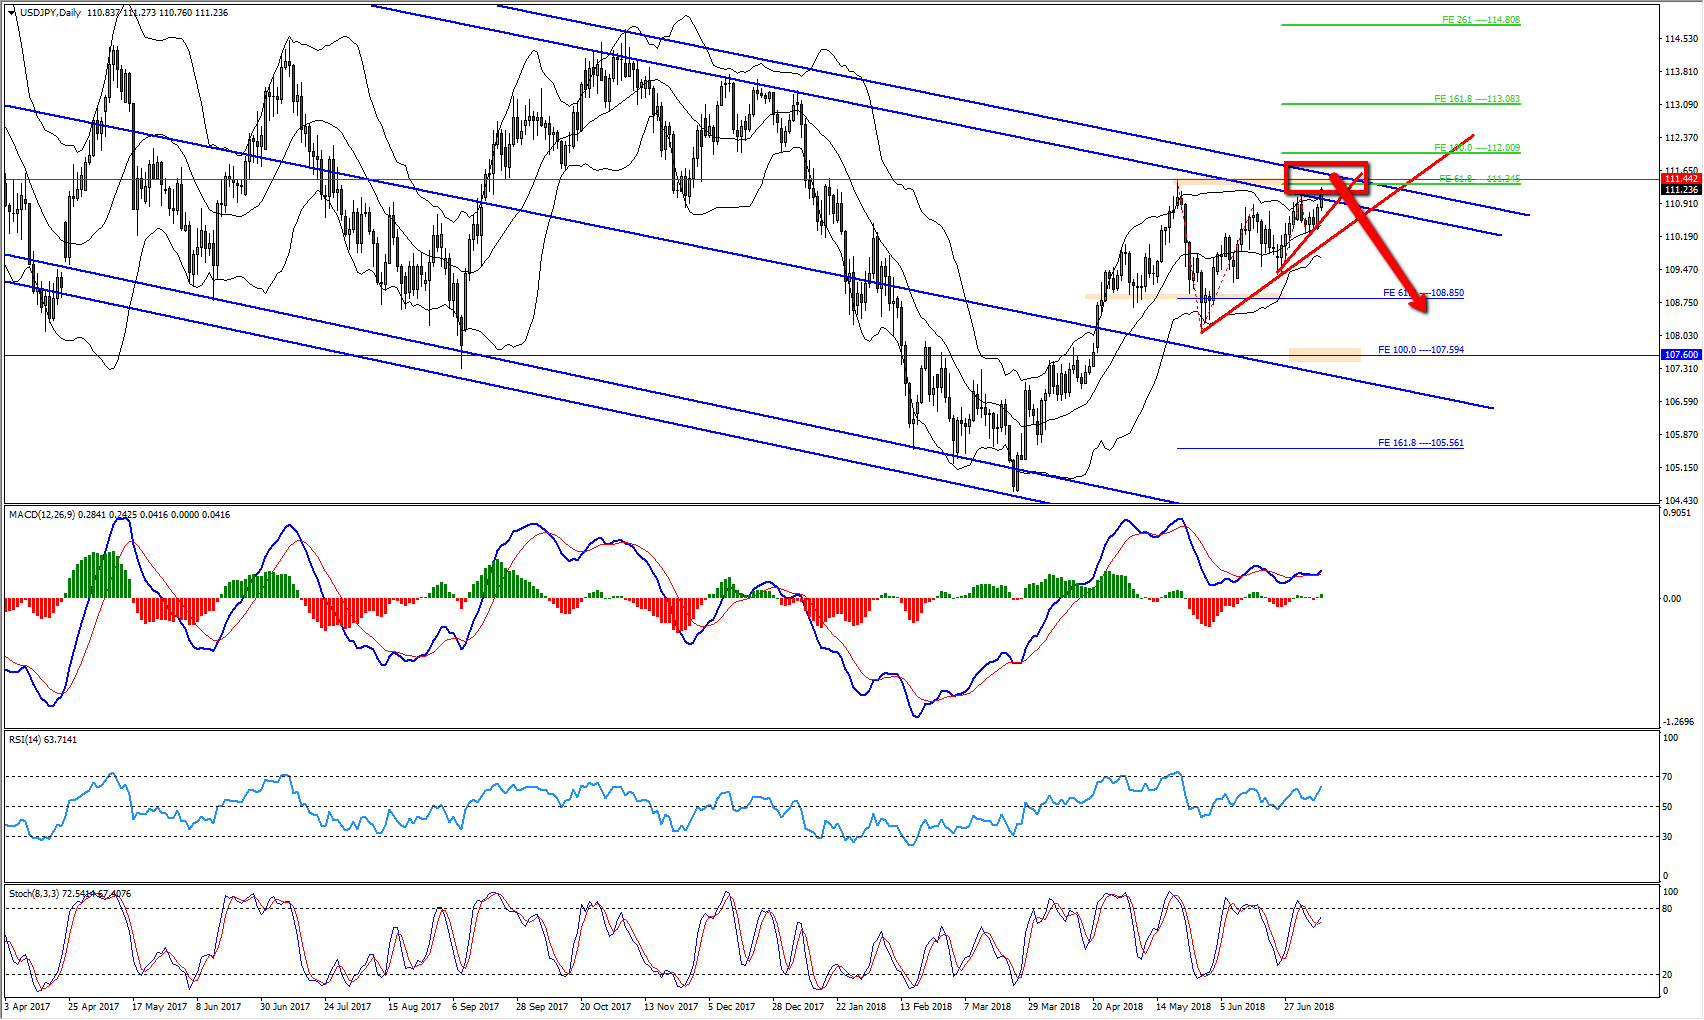 USDJPY Bearish Channel Provides Sell Opportunity